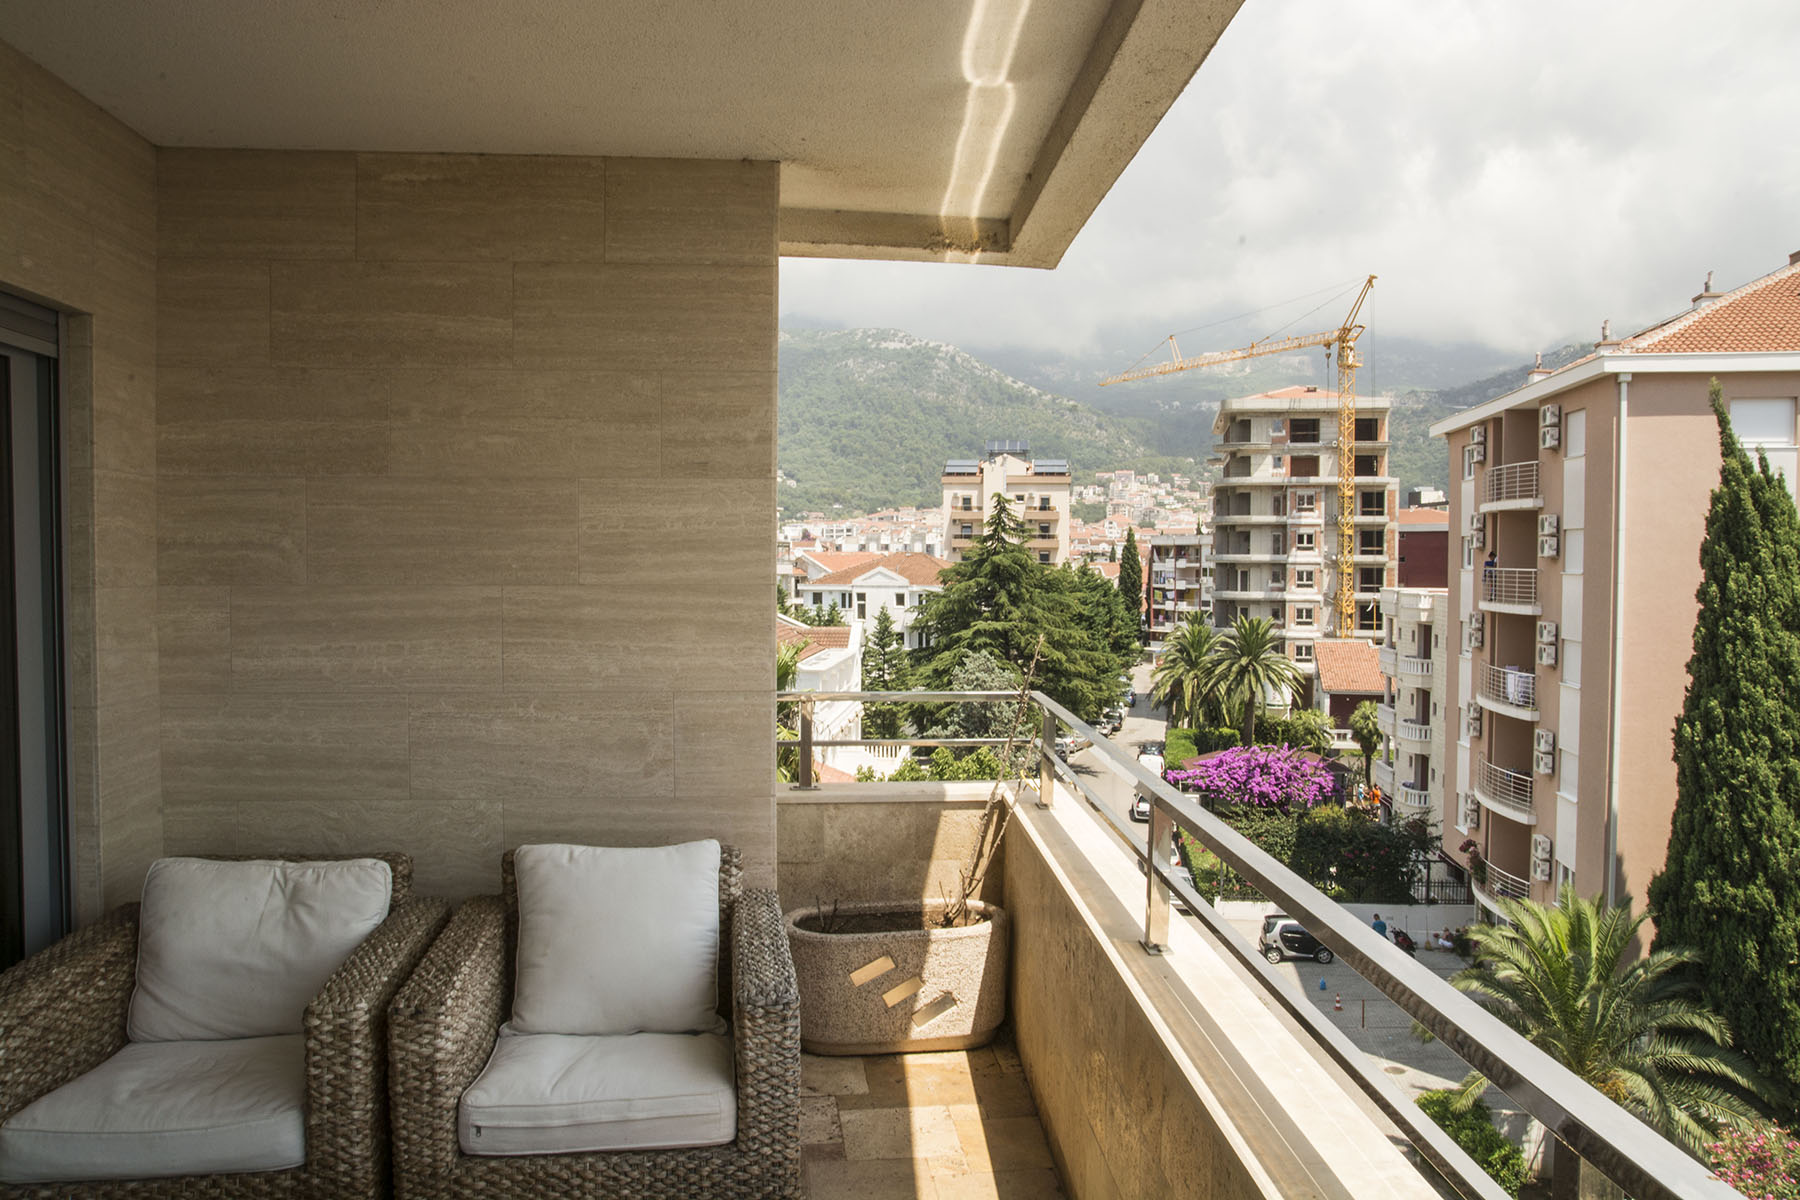 Real estate for sale in Montenegro